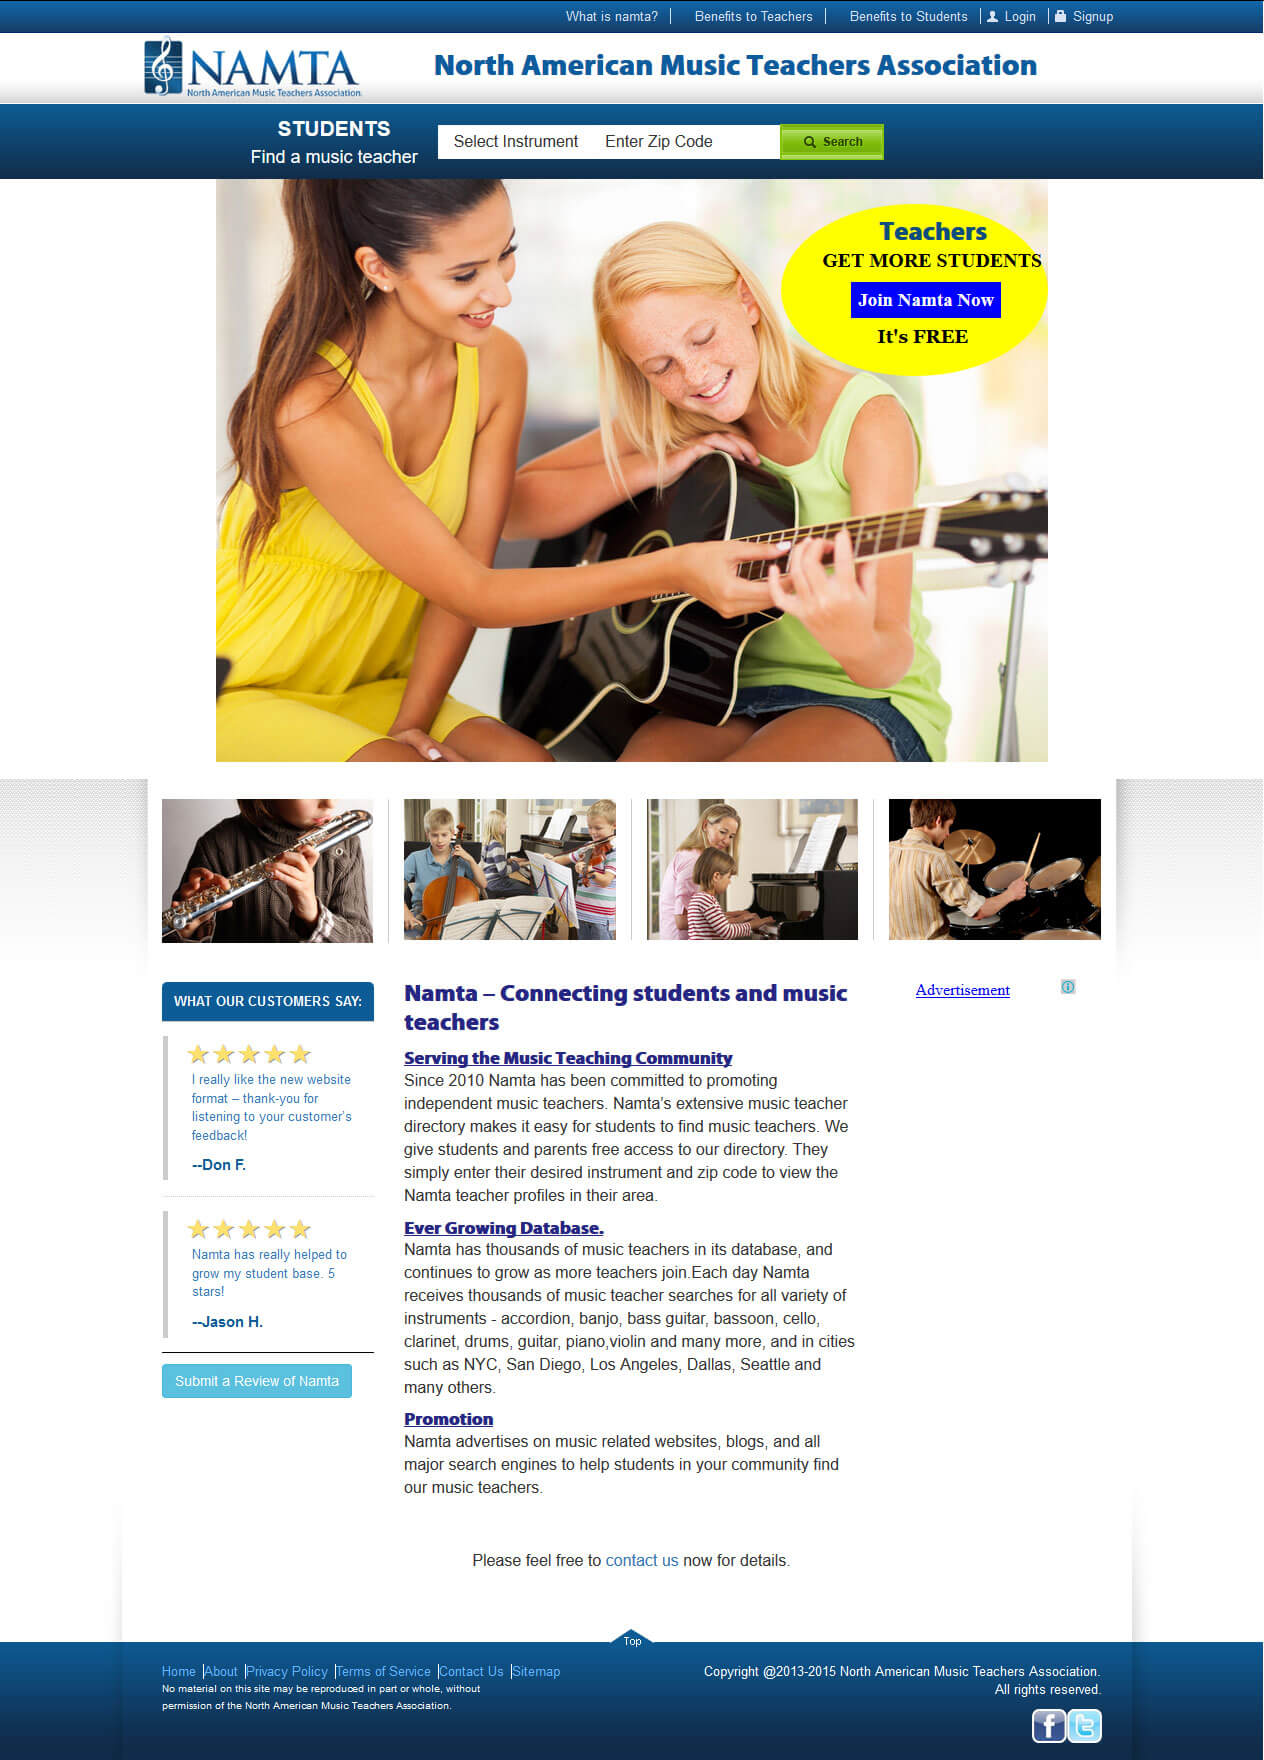 A PHP-Based Website to Connect Students and Music Teachers